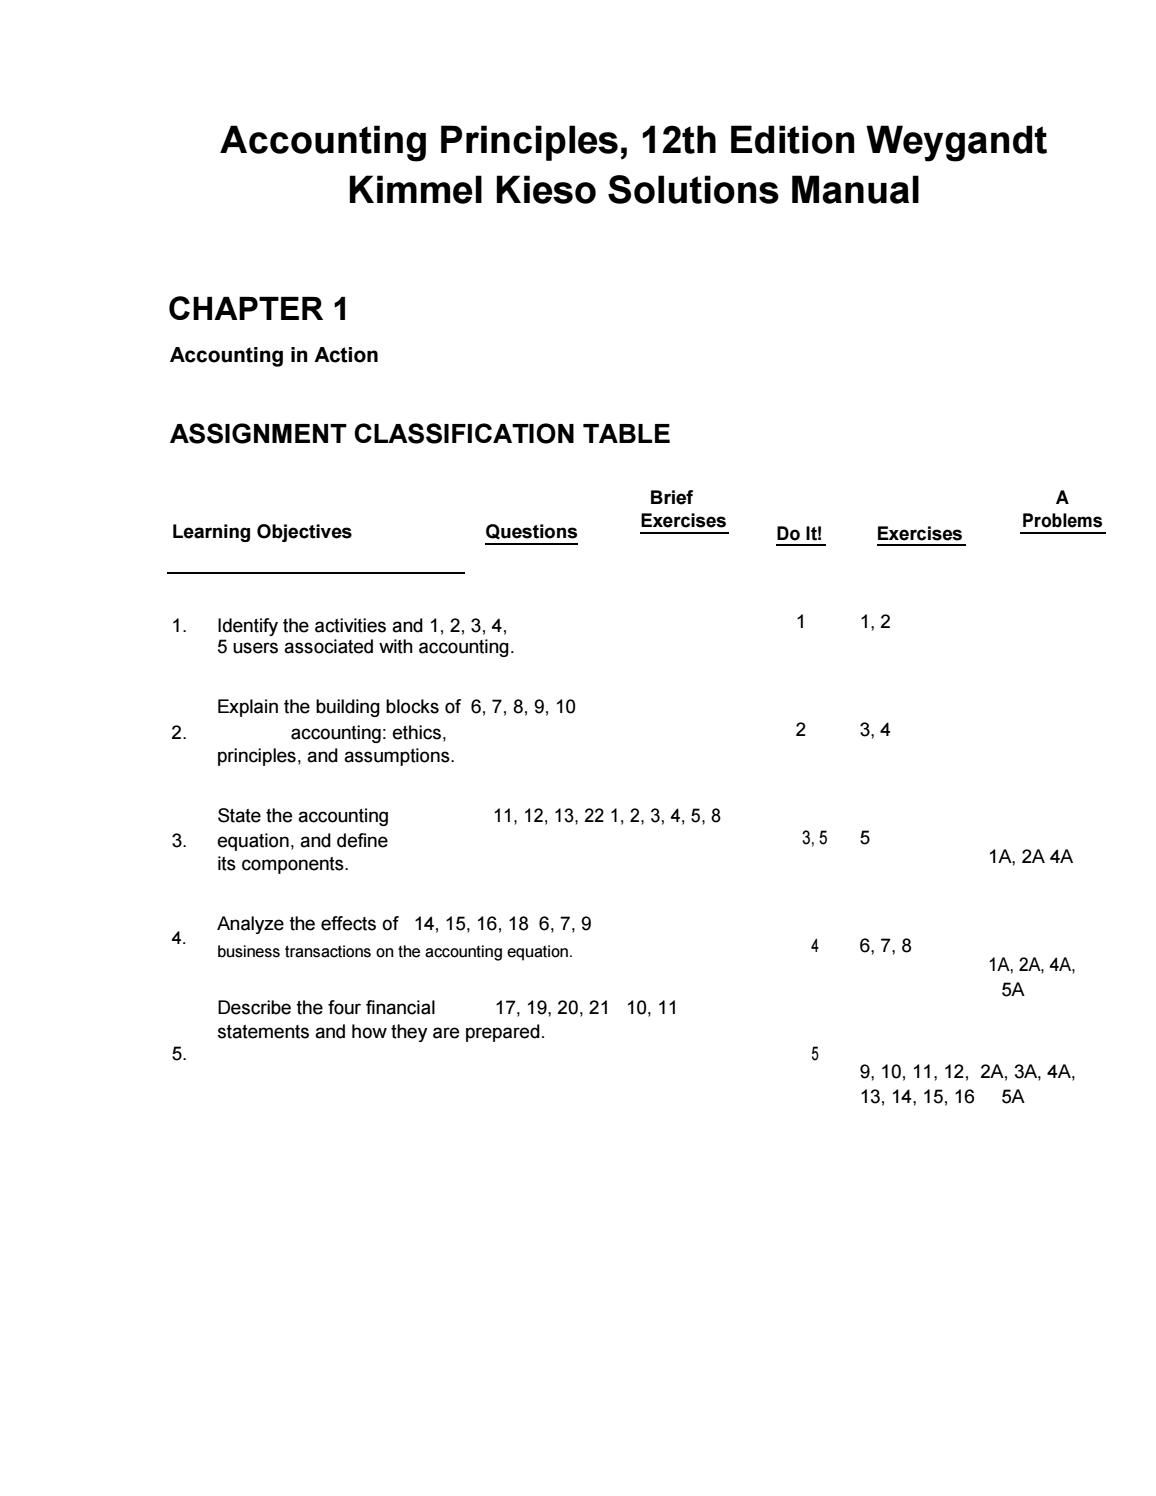 Download pdf accounting principles 12th edition weygandt kimmel kieso solutions  manual Accounting Principles, Manual,